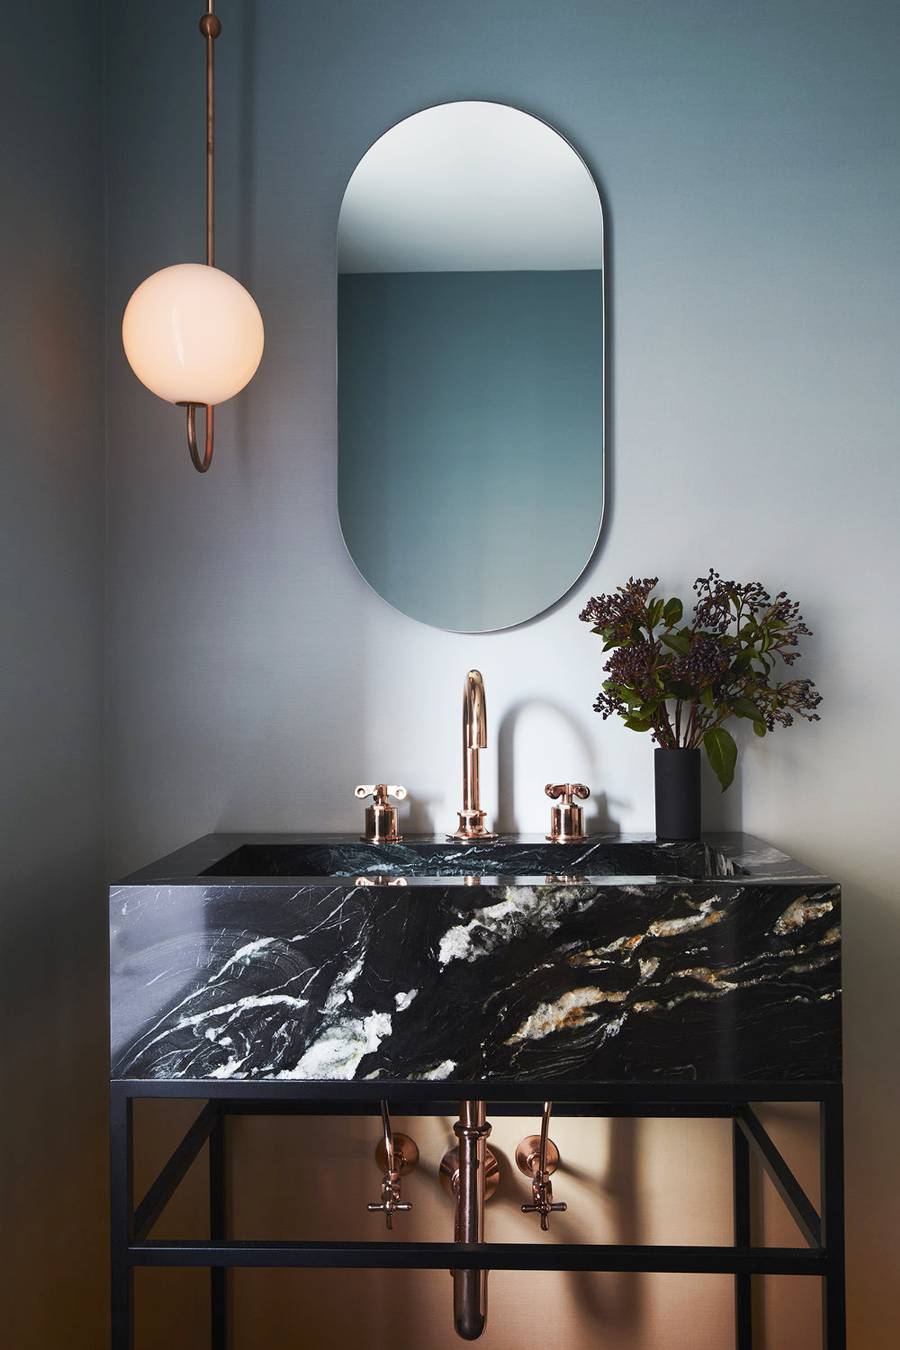 lower drop pendant with gold toned support frameless mirror black marble bathroom vanity gold toned faucet and piping